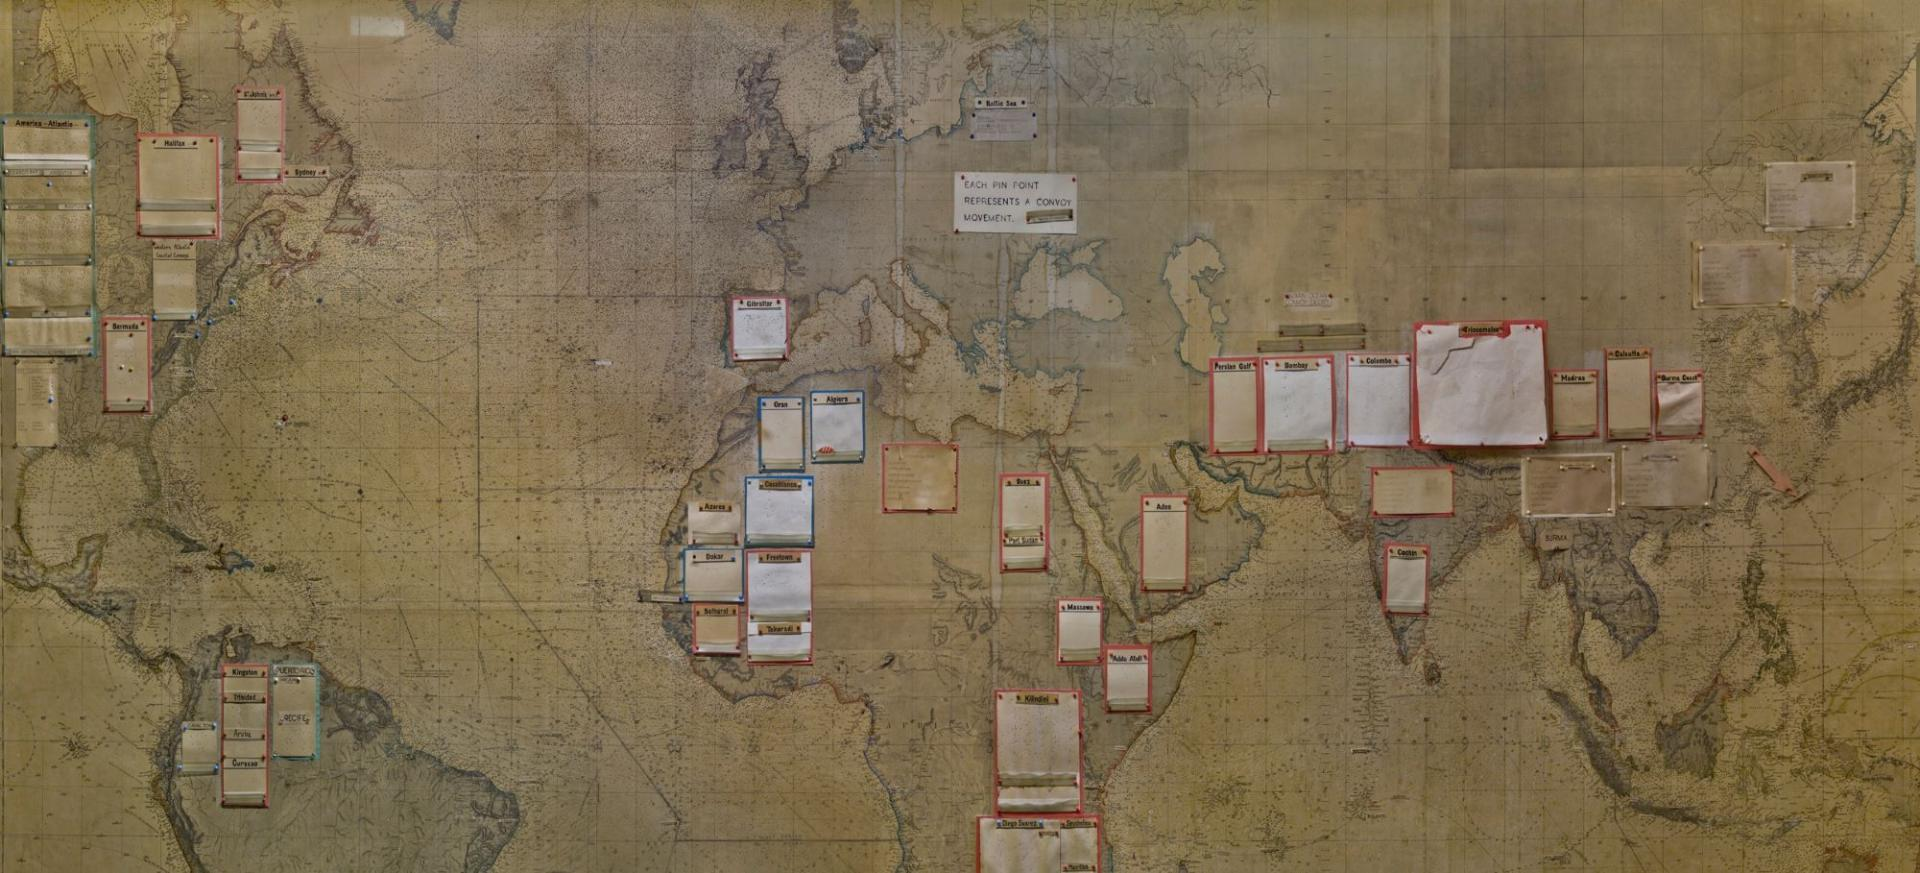 Plans on a map at Churchill War Rooms